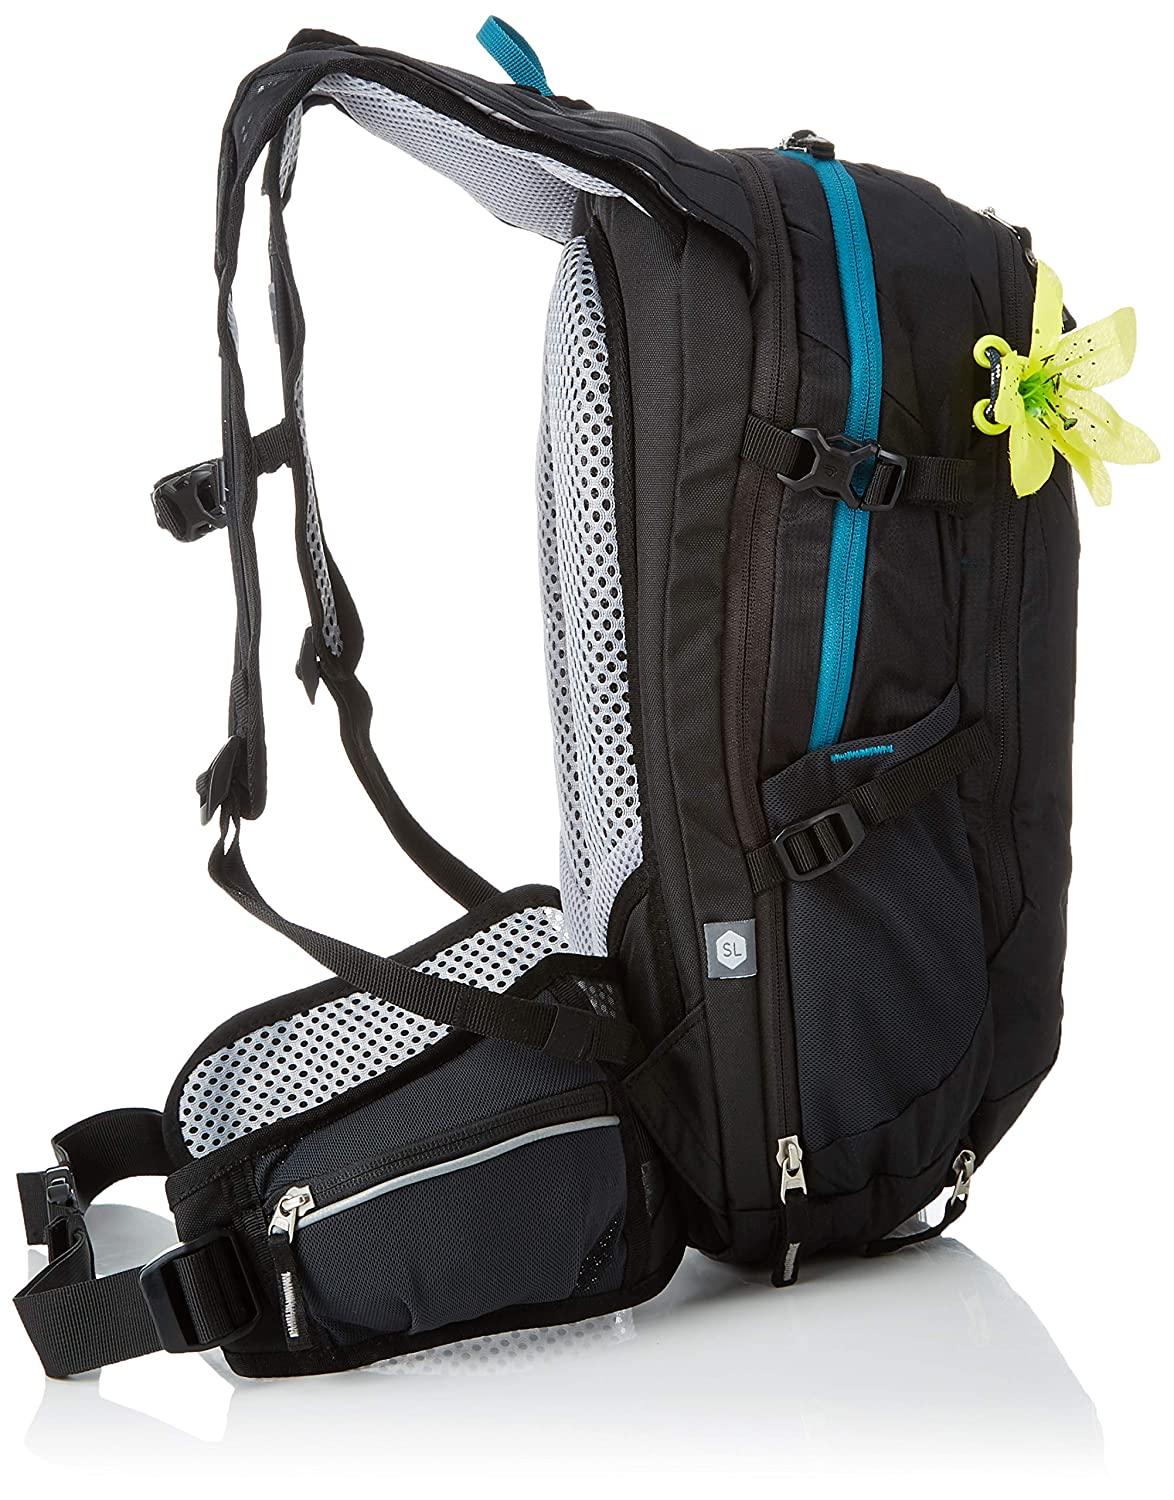 Amazon.com: Deuter Compact EXP 10 SL Biking Backpack with Hydration System, Black: Clothing